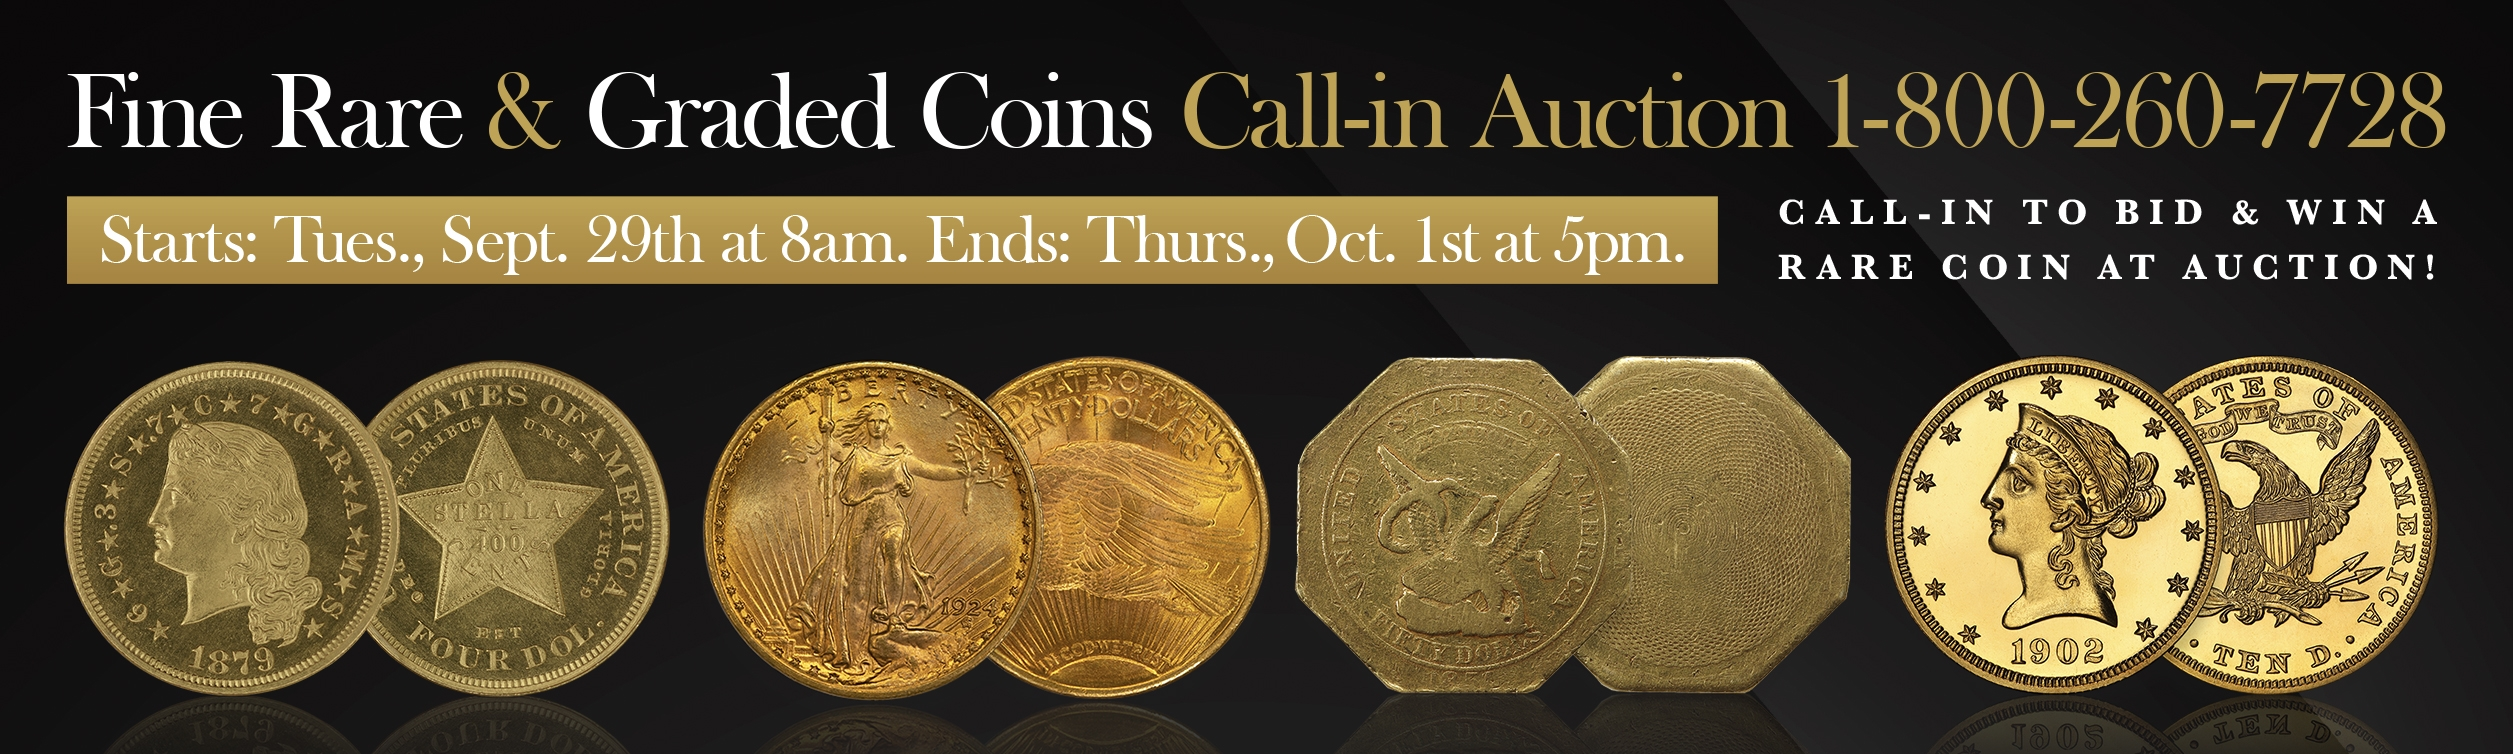 Call-In Coin Auction